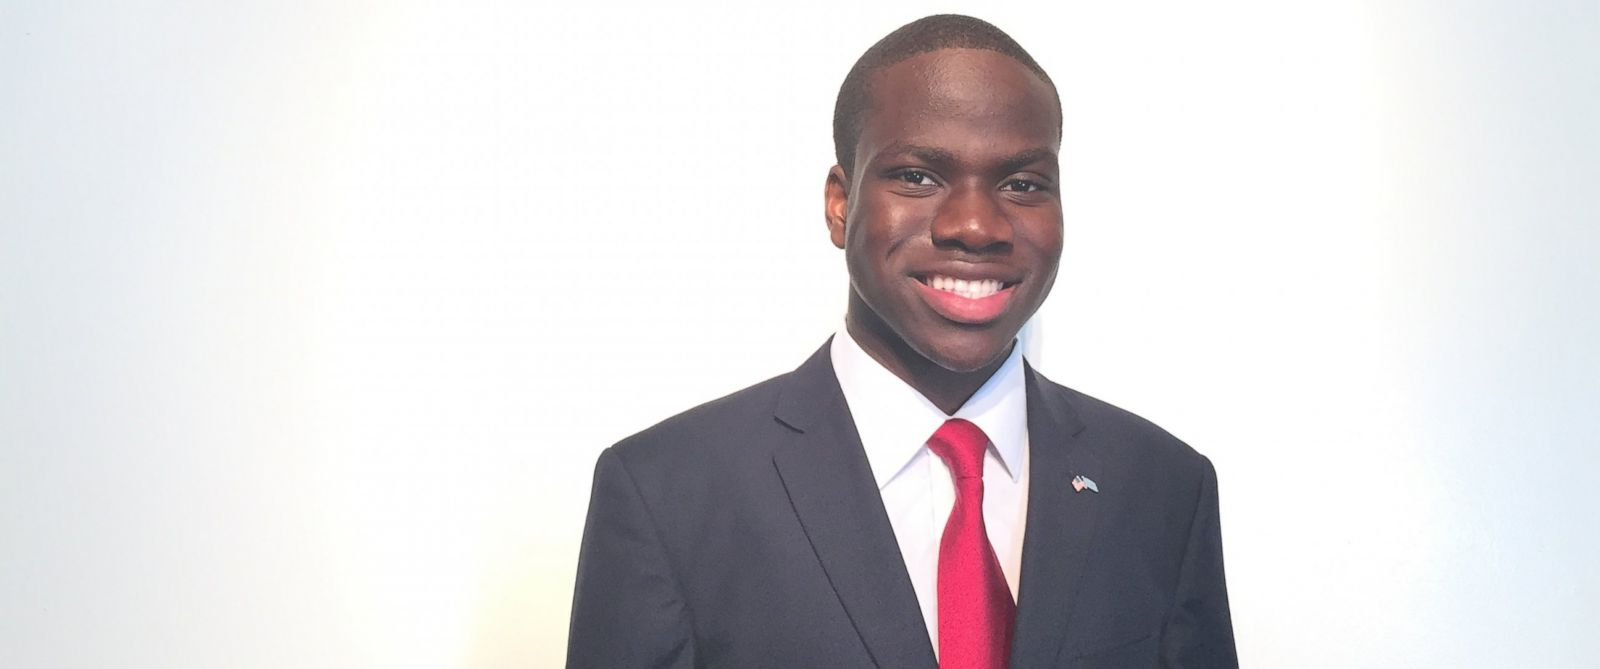 PHOTO: Long Island high schooler Harold Ekeh, 17, was accepted to every college he applied to -- including all 8 Ivy League schools.